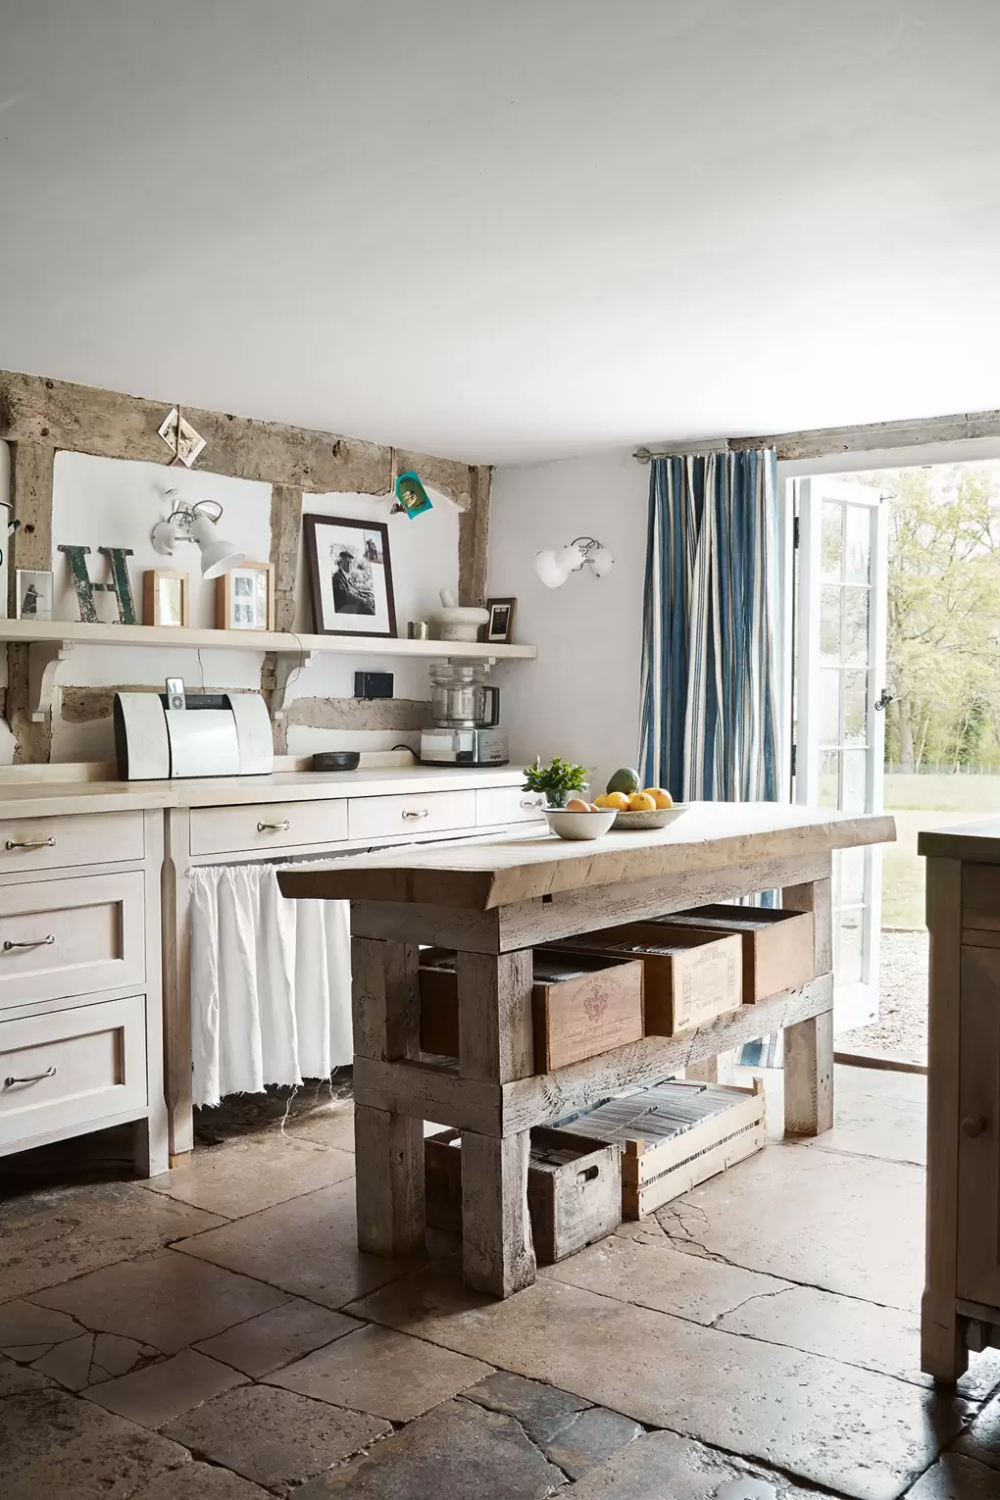 An ancient Sussex farmhouse filled with inherited furniture and flea-market finds